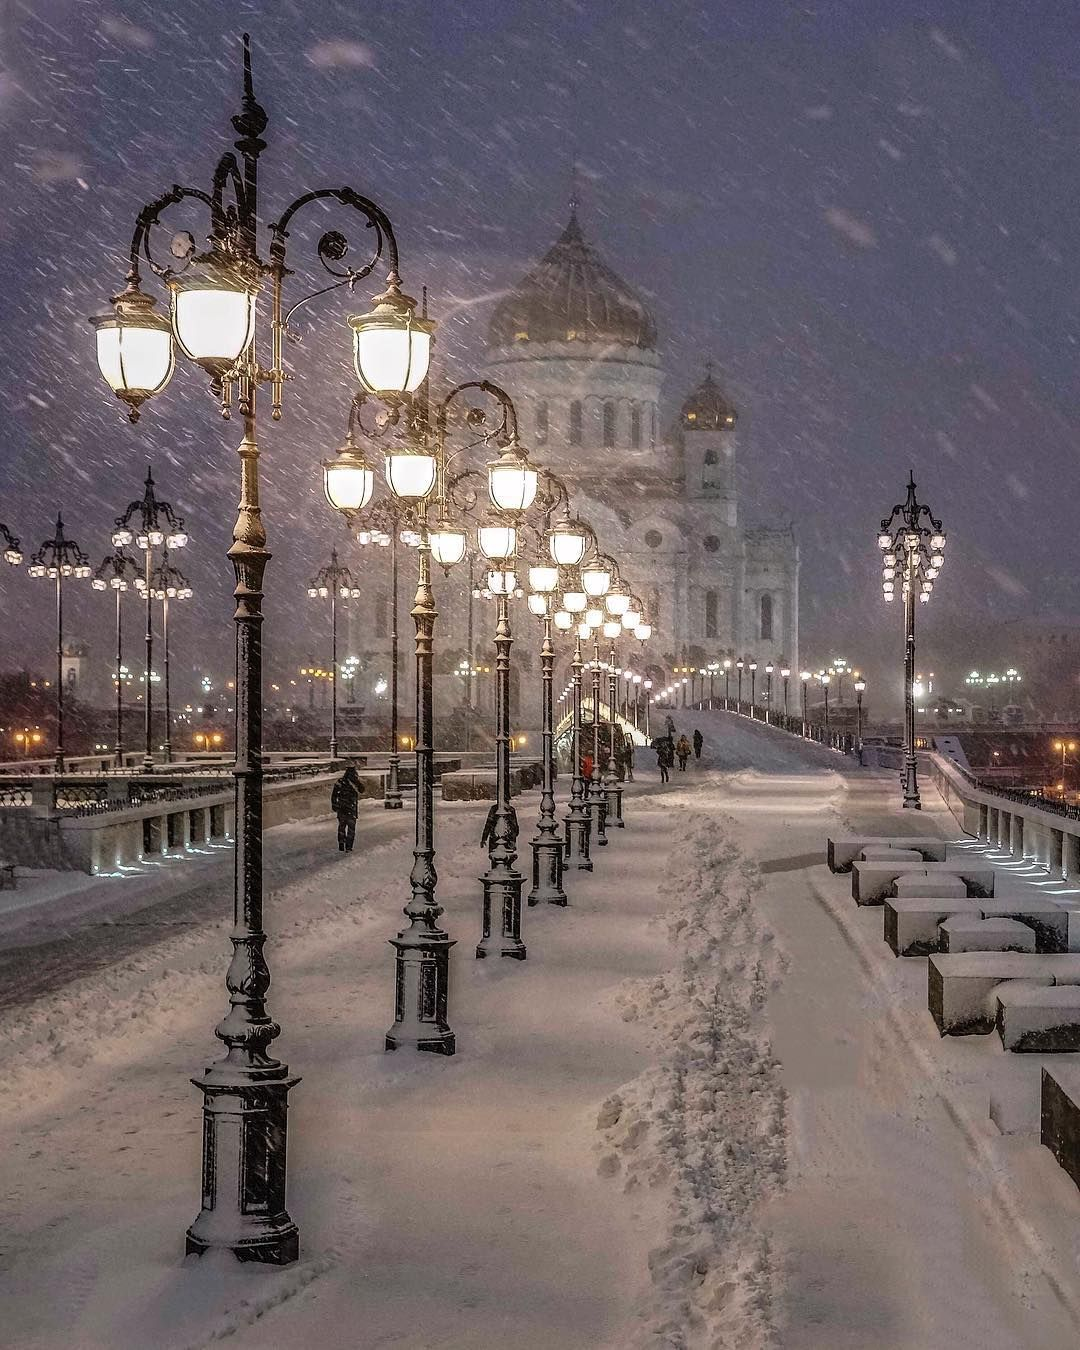 Snow in Moscow   Winter Scenes in 2019   Winter, Snow, Moscow 1802ae09635